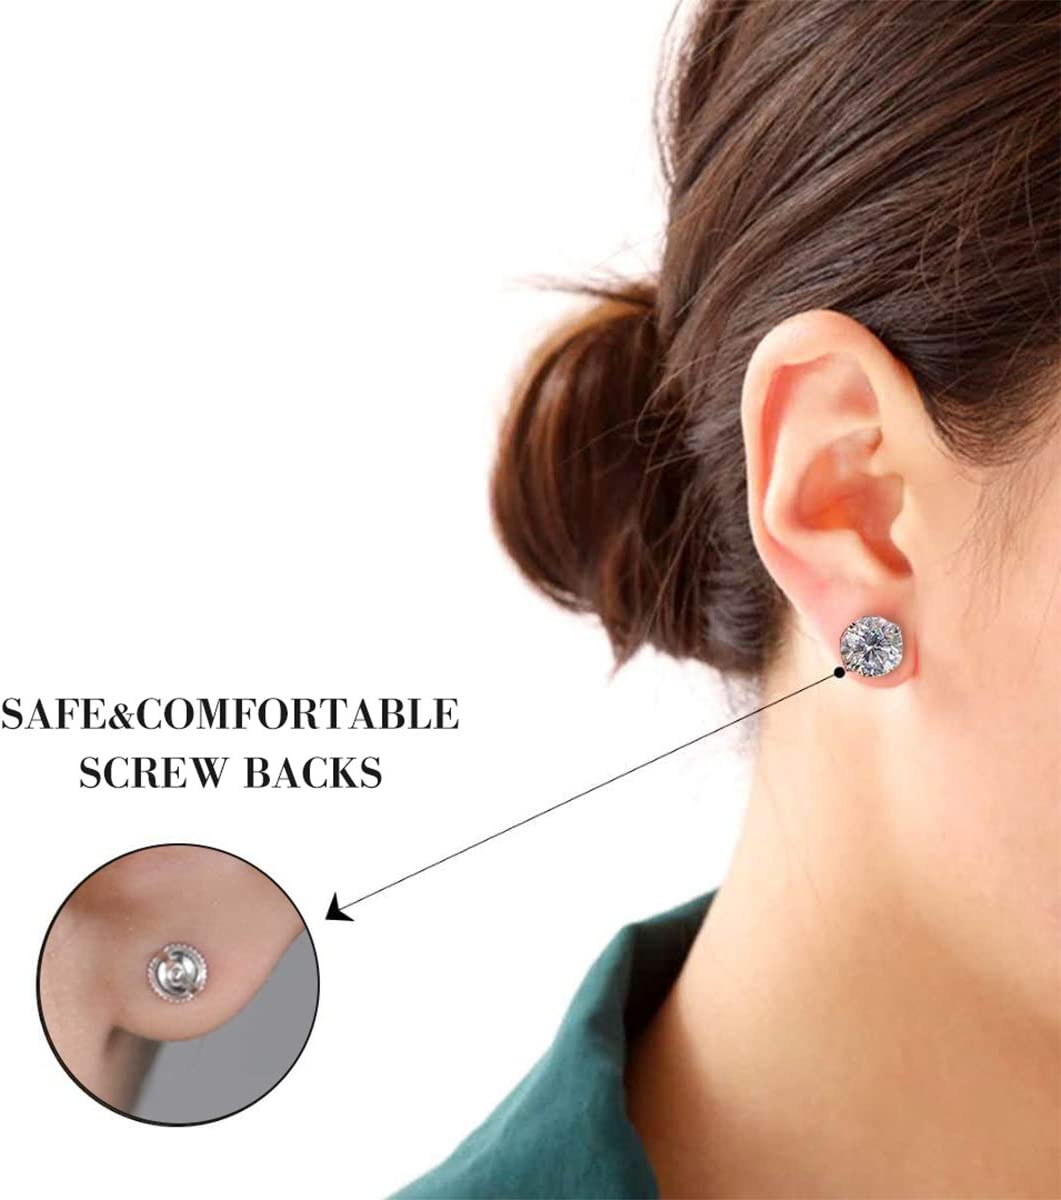 SIWOMS Earring Backs Safety 925 Sterling Silver Screw on Earring Backs Replacements Hypoallergenic 18K Gold Plated Screw Posts and Backs for Stud Earring Secure Locking Screwbacks 0.032Post 3 Pairs